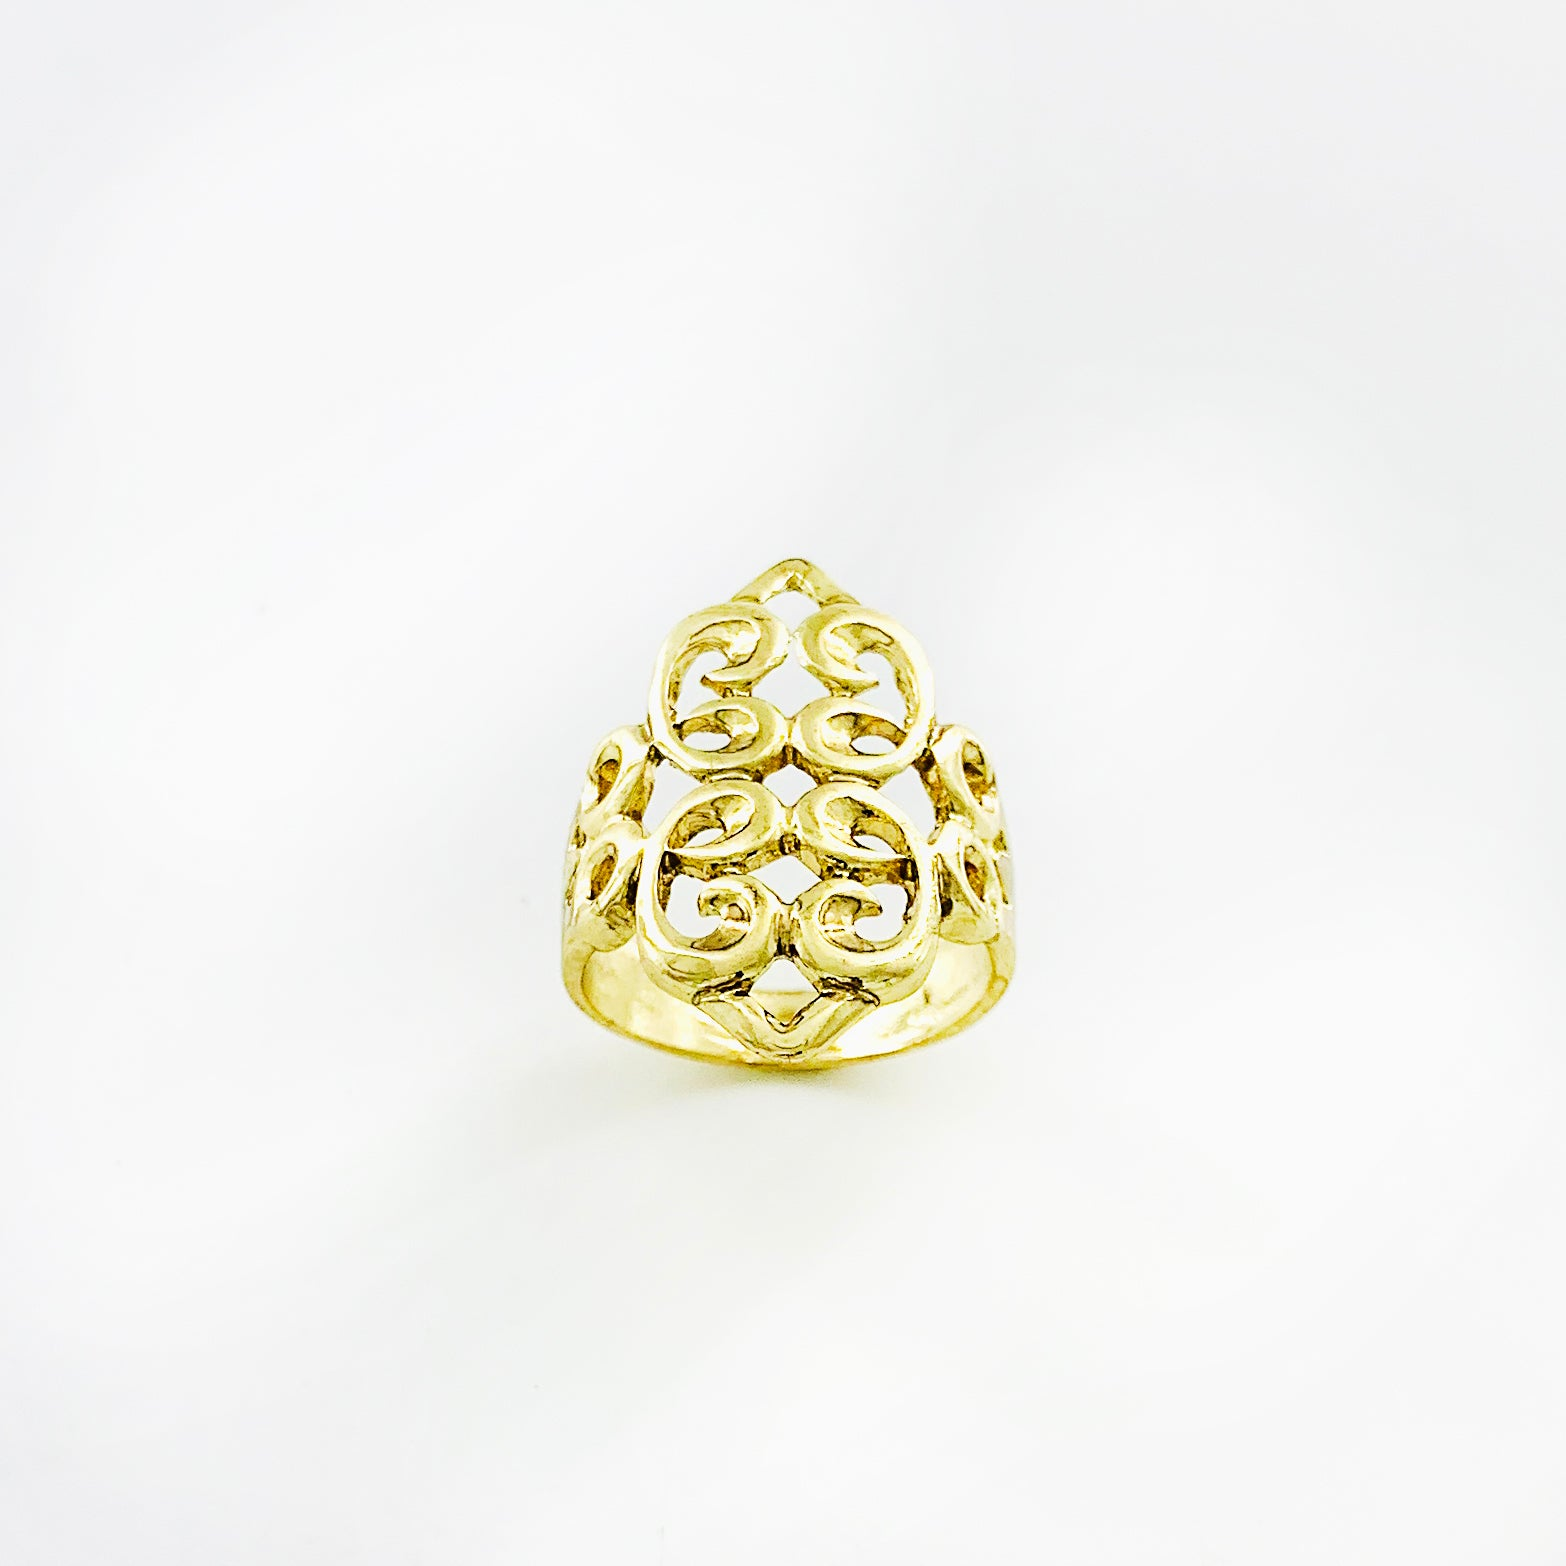 Gold ring with curly motif cut-outs